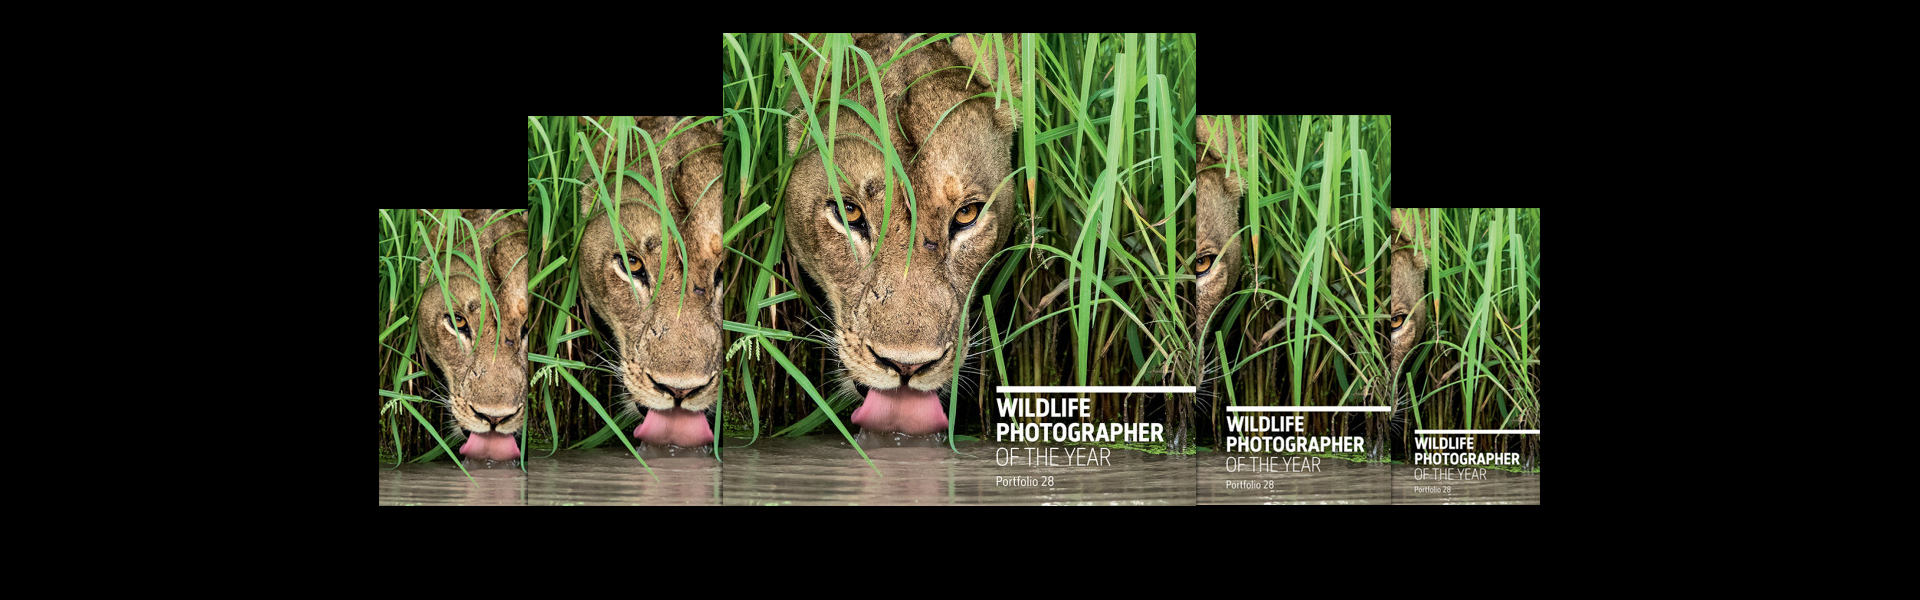 Win a Wildlife Photographer of the Year portfolio